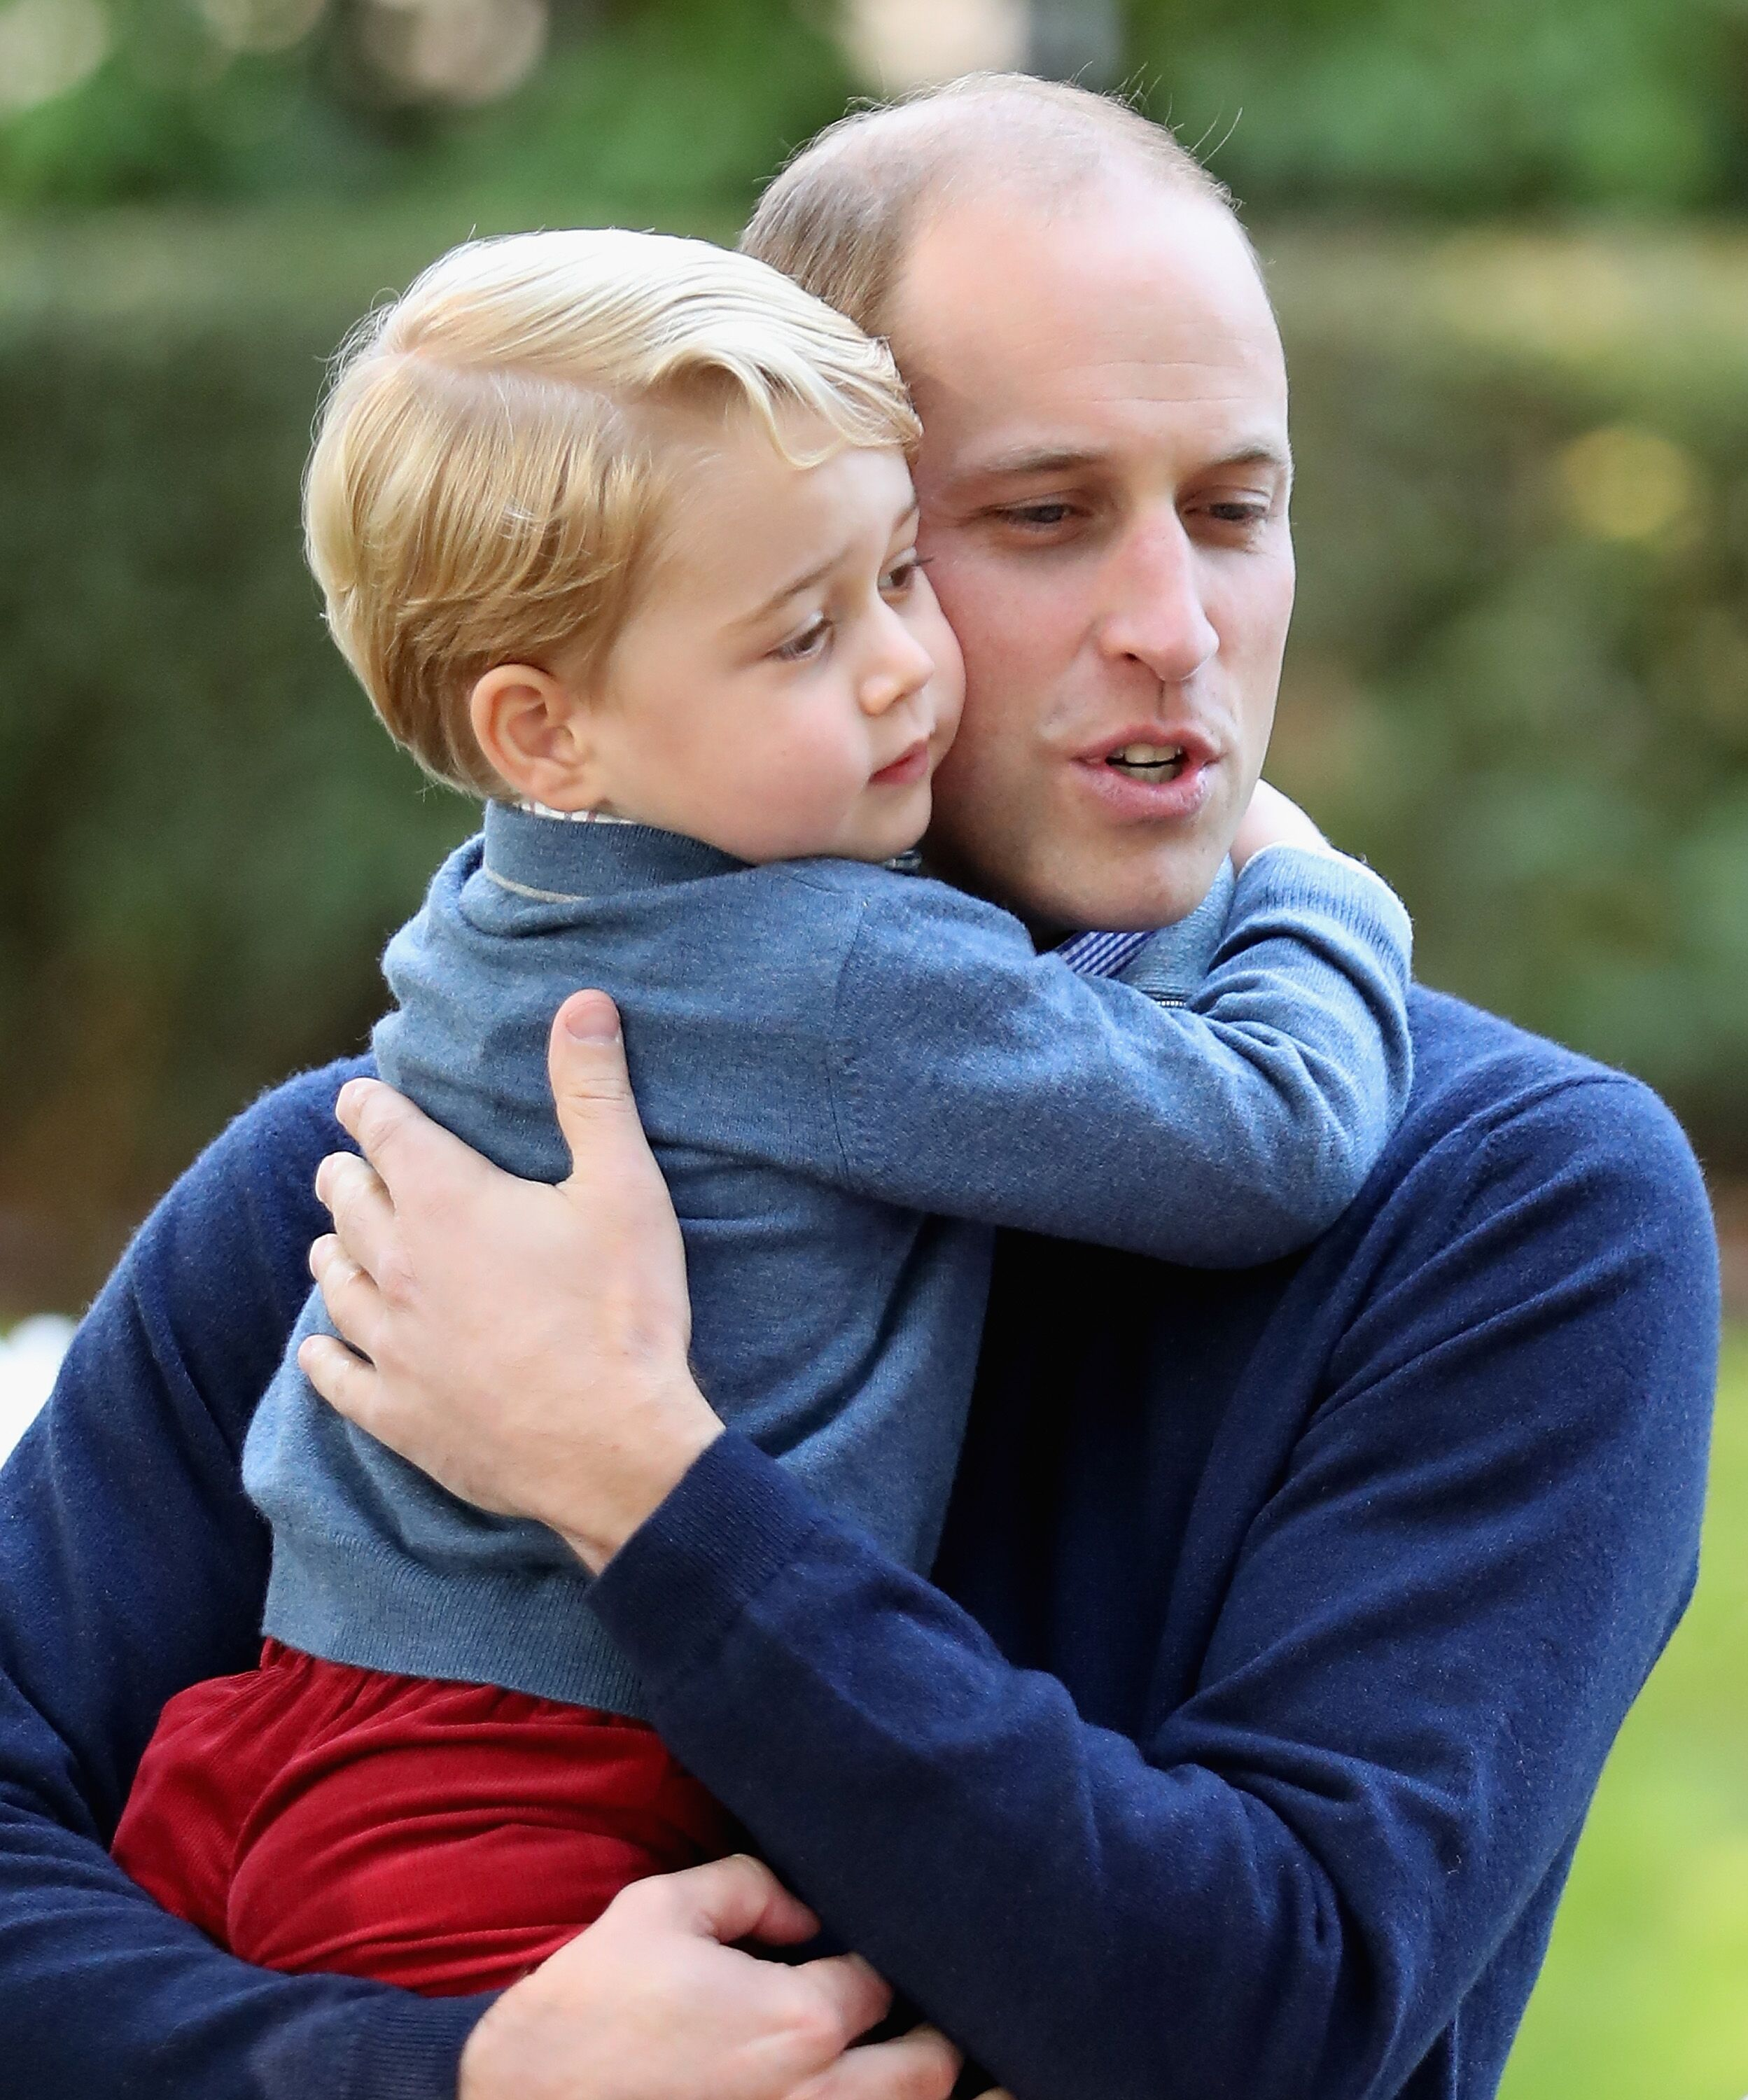 Prince William and Prince George at a children's party. | Source: Getty Images